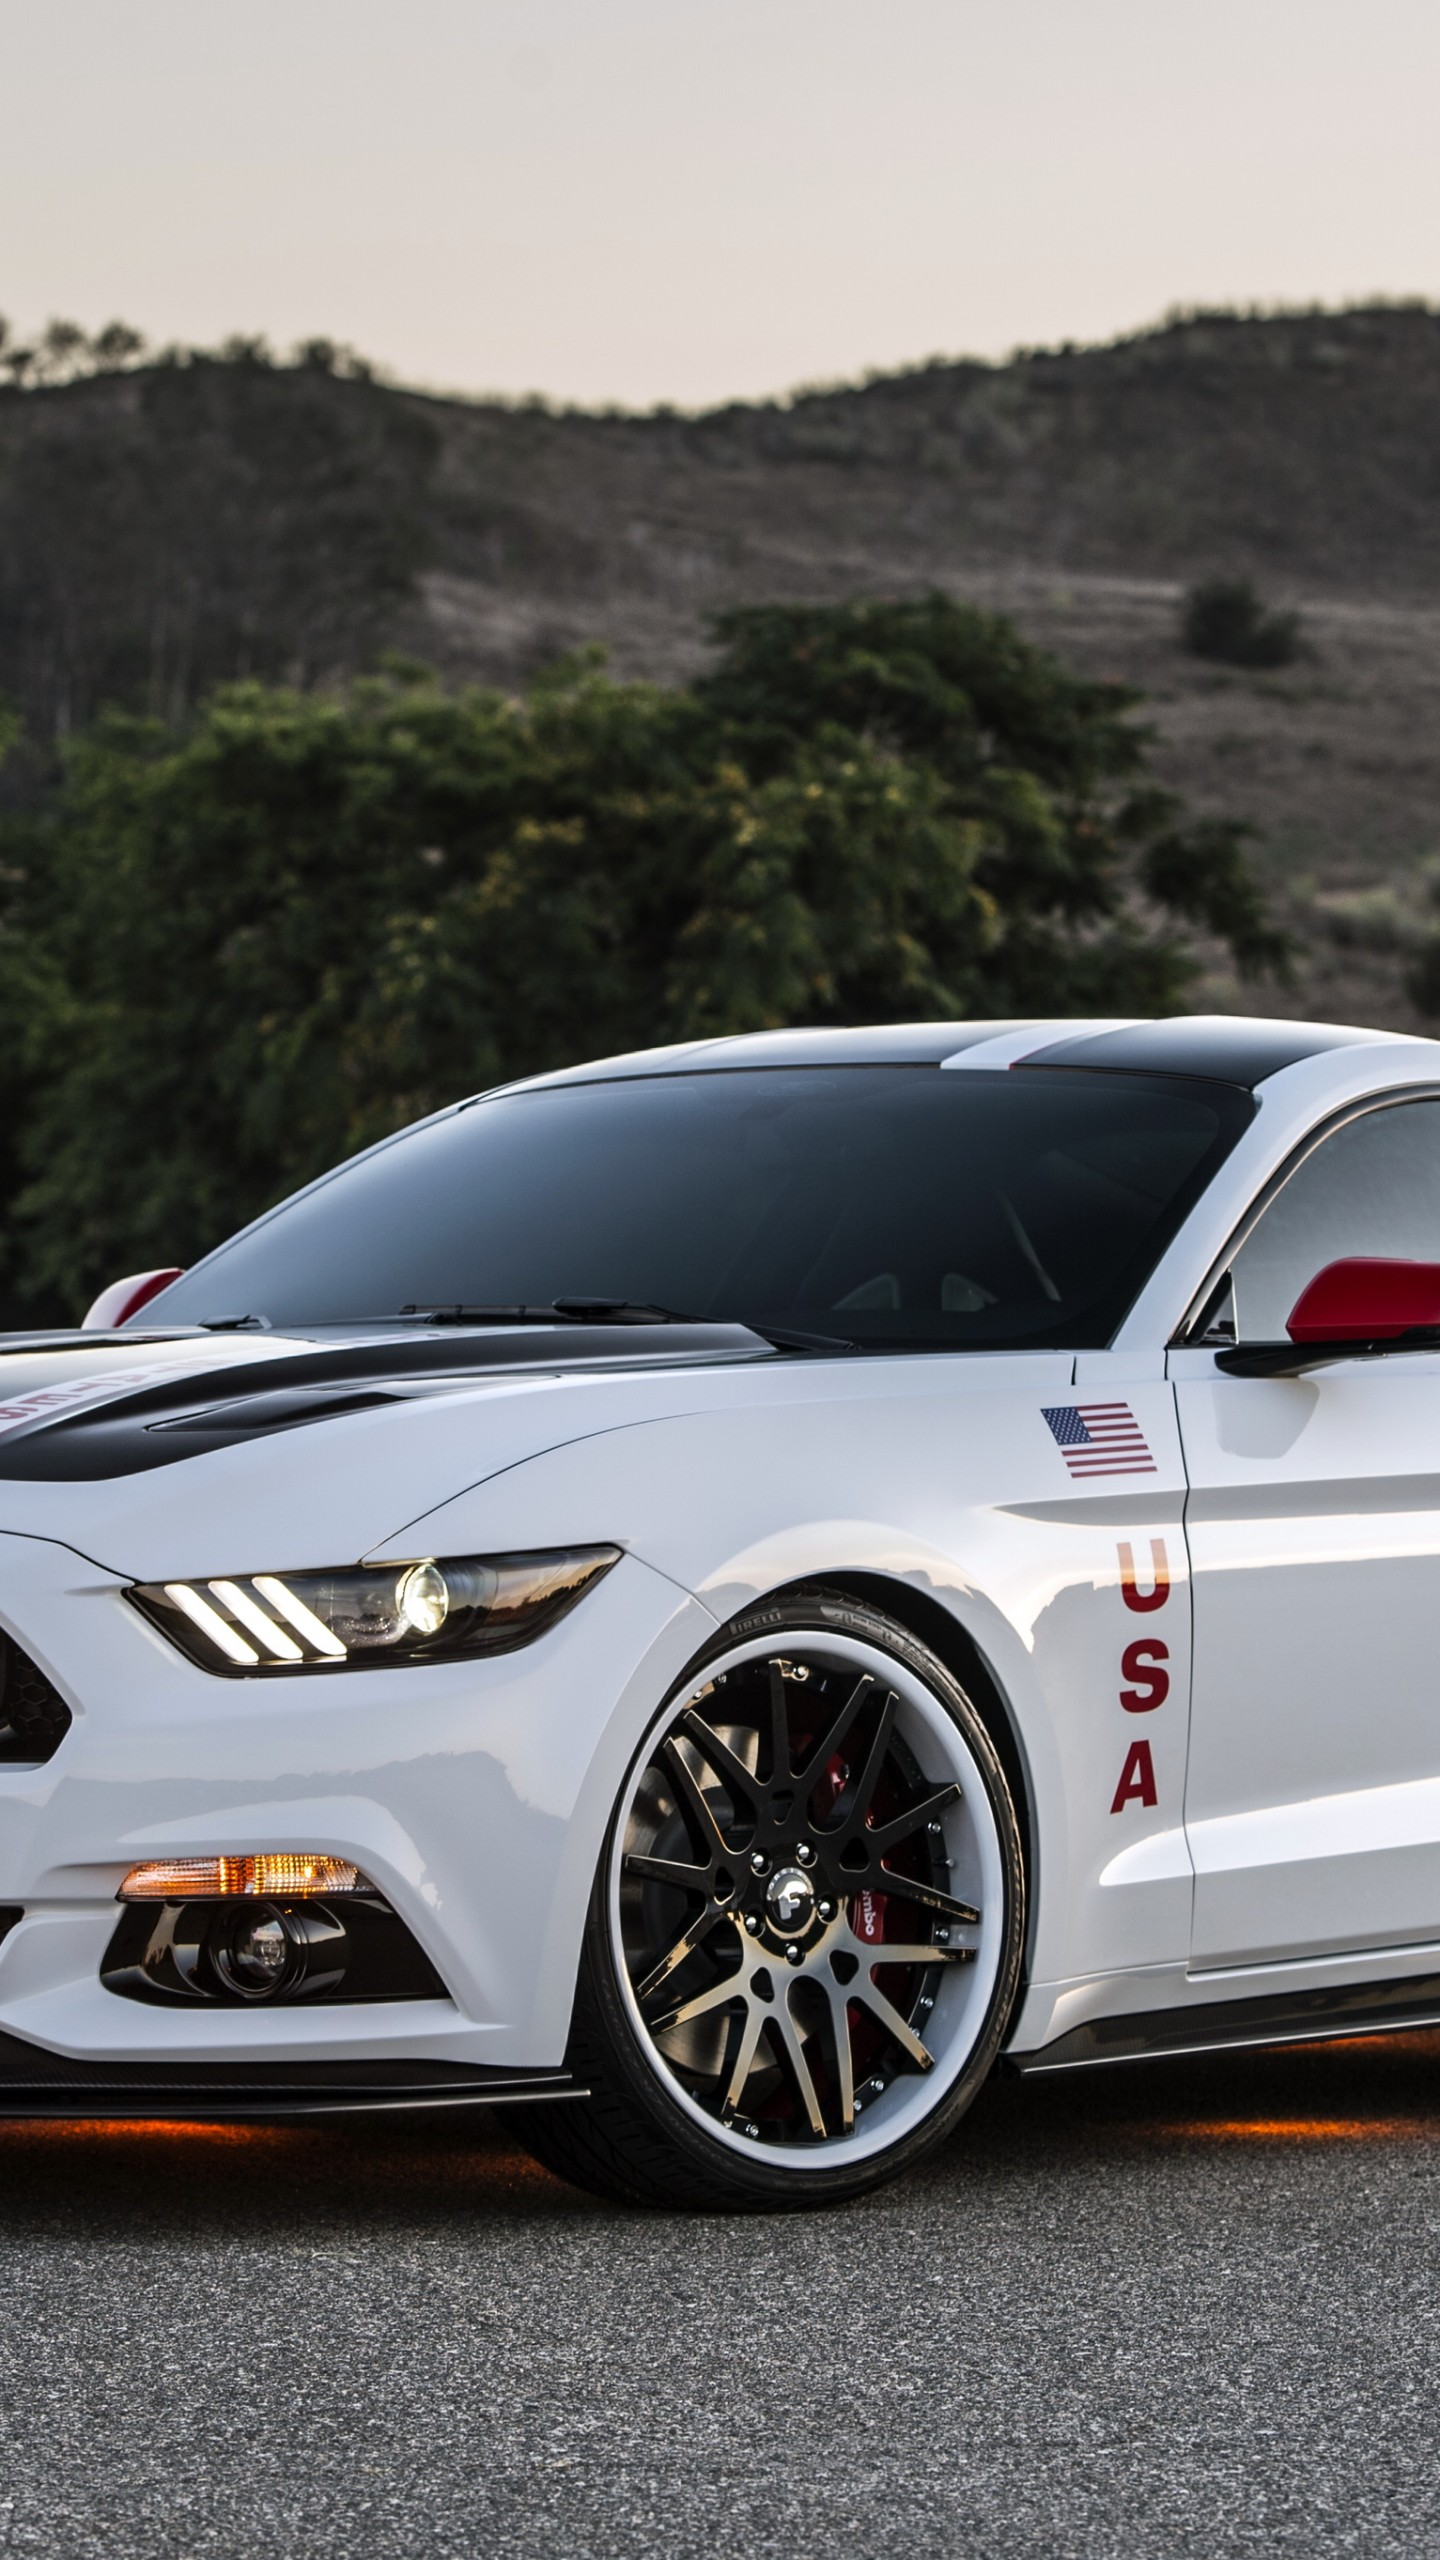 Nissan Luxury Brand >> Wallpaper Ford Mustang Apollo Edition, mustang, white ...